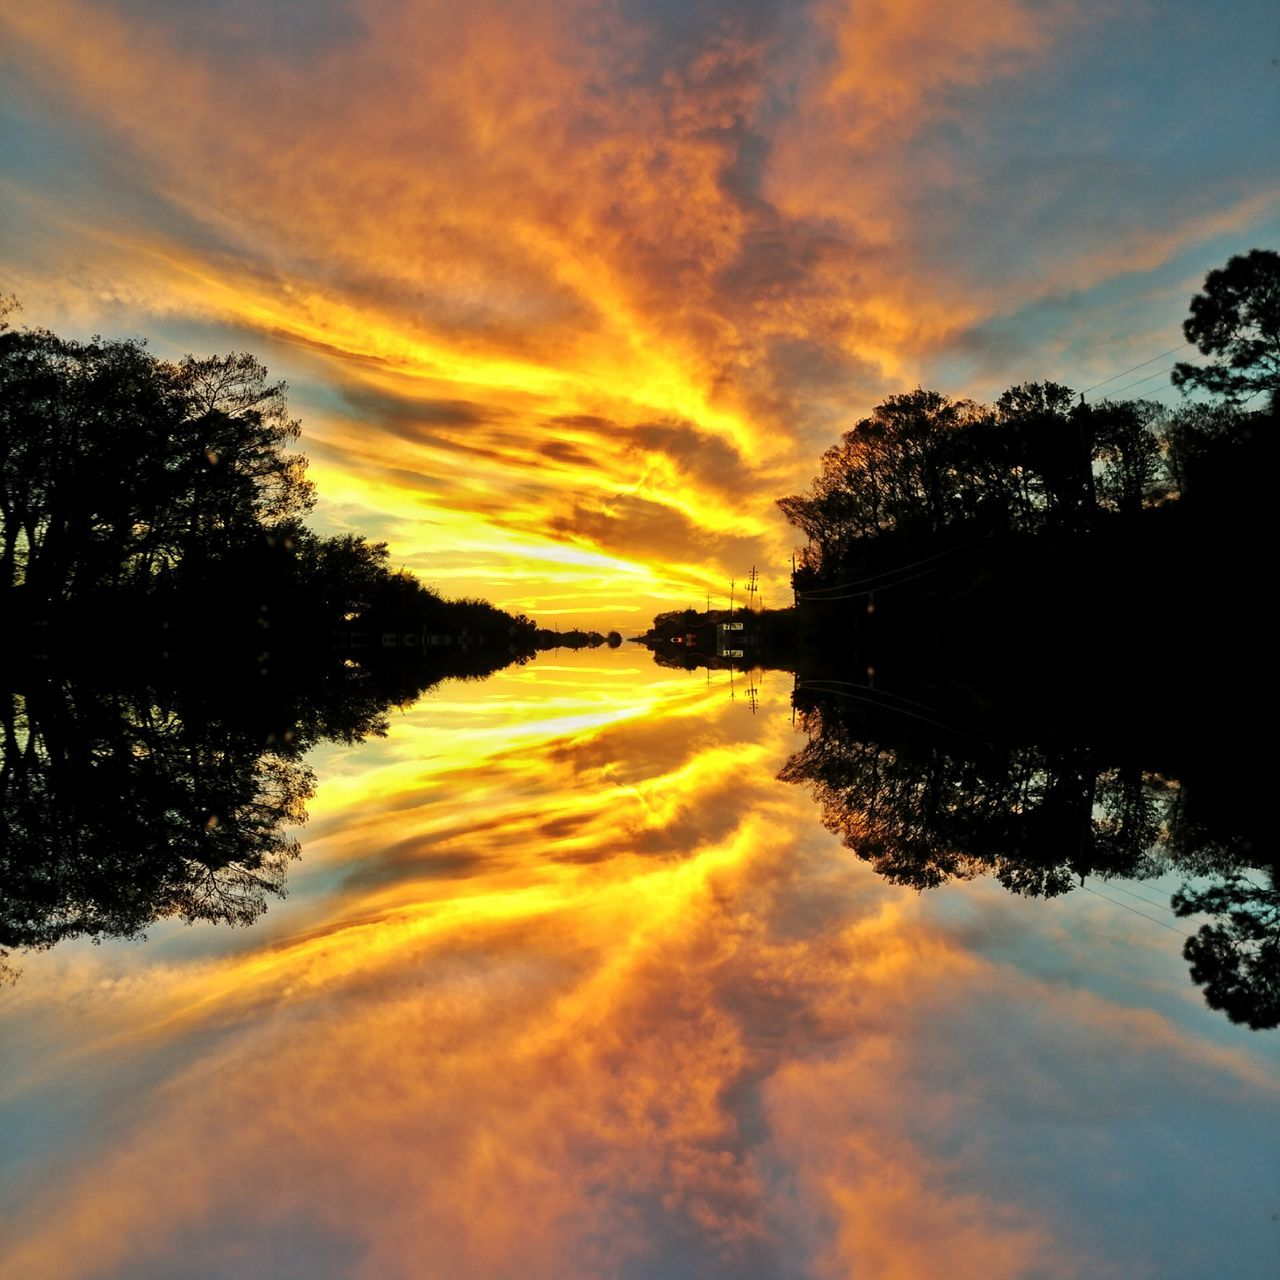 Reflection Water Sunset Tree Lake Nature Tranquility Reflection Lake Scenics Beauty In Nature Sky Orange Color Travel Outdoors Tranquil Scene Idyllic No People